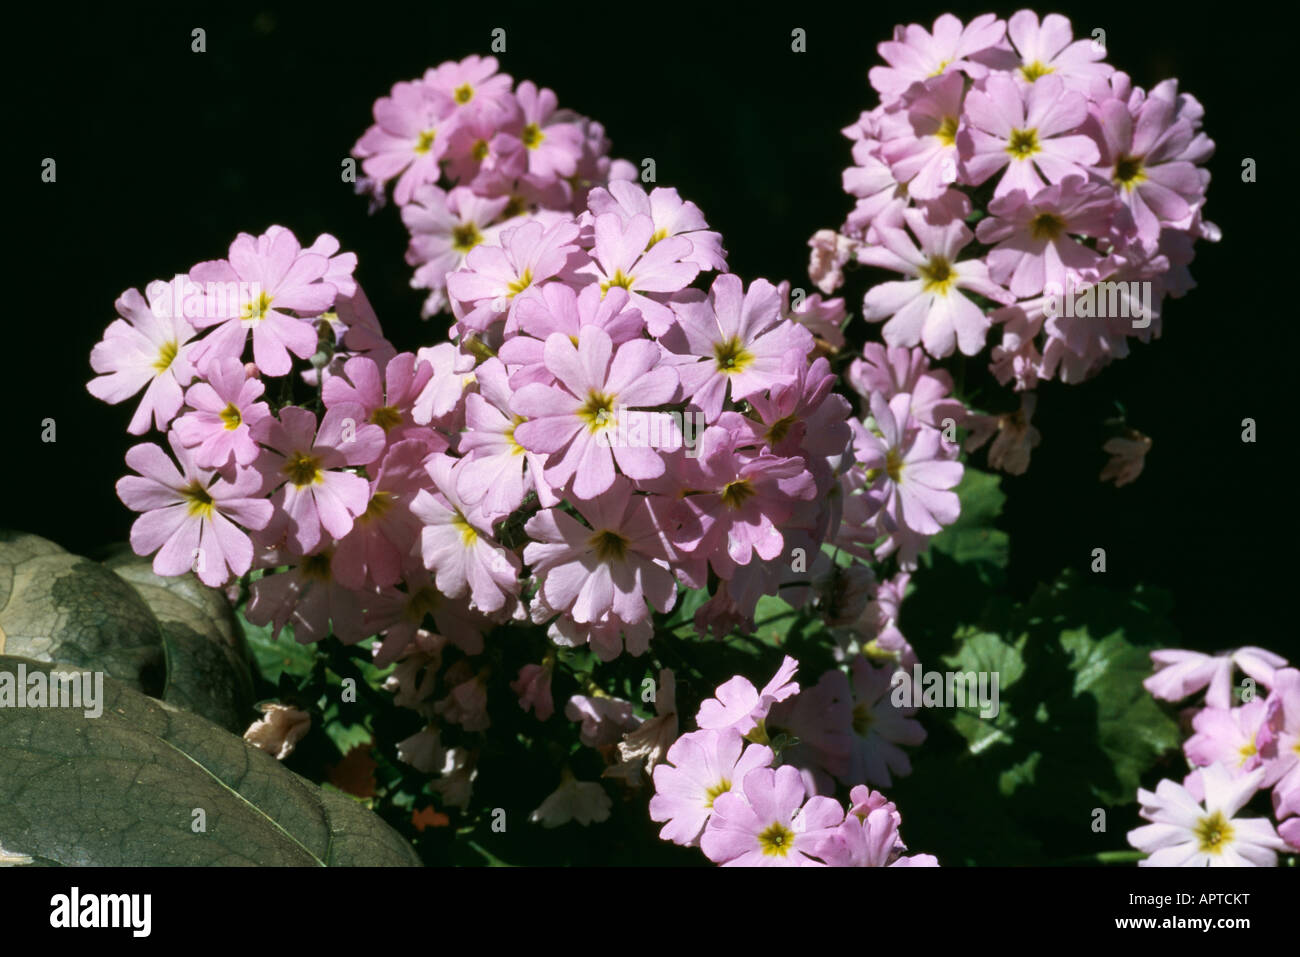 Pale pink star shaped stock photos pale pink star shaped stock primula candelabra pale pink umbels small dainty flowers stock image mightylinksfo